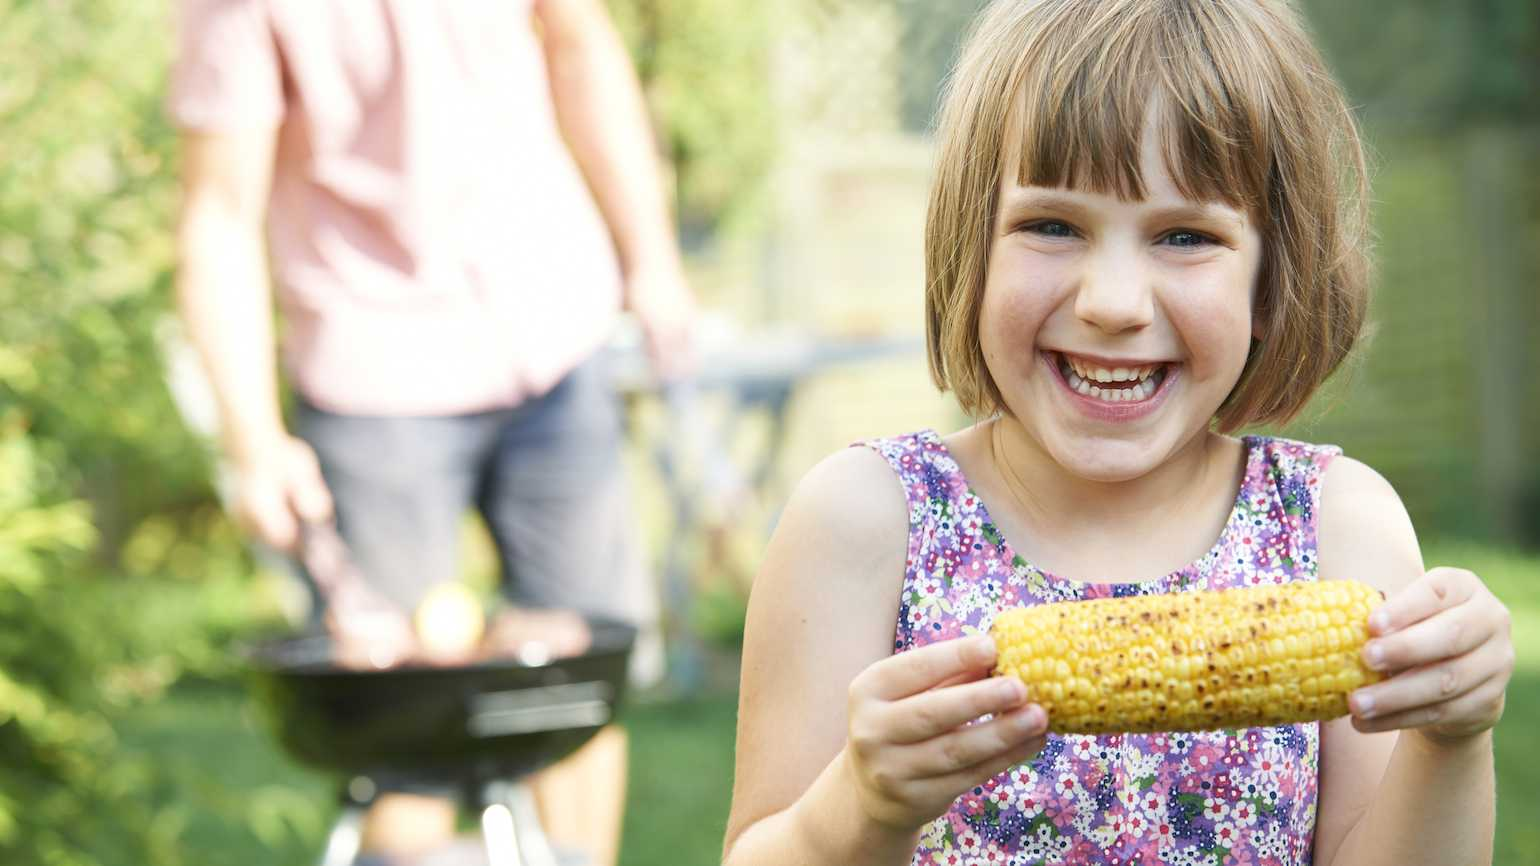 Eating an ear of corn at the end of summer